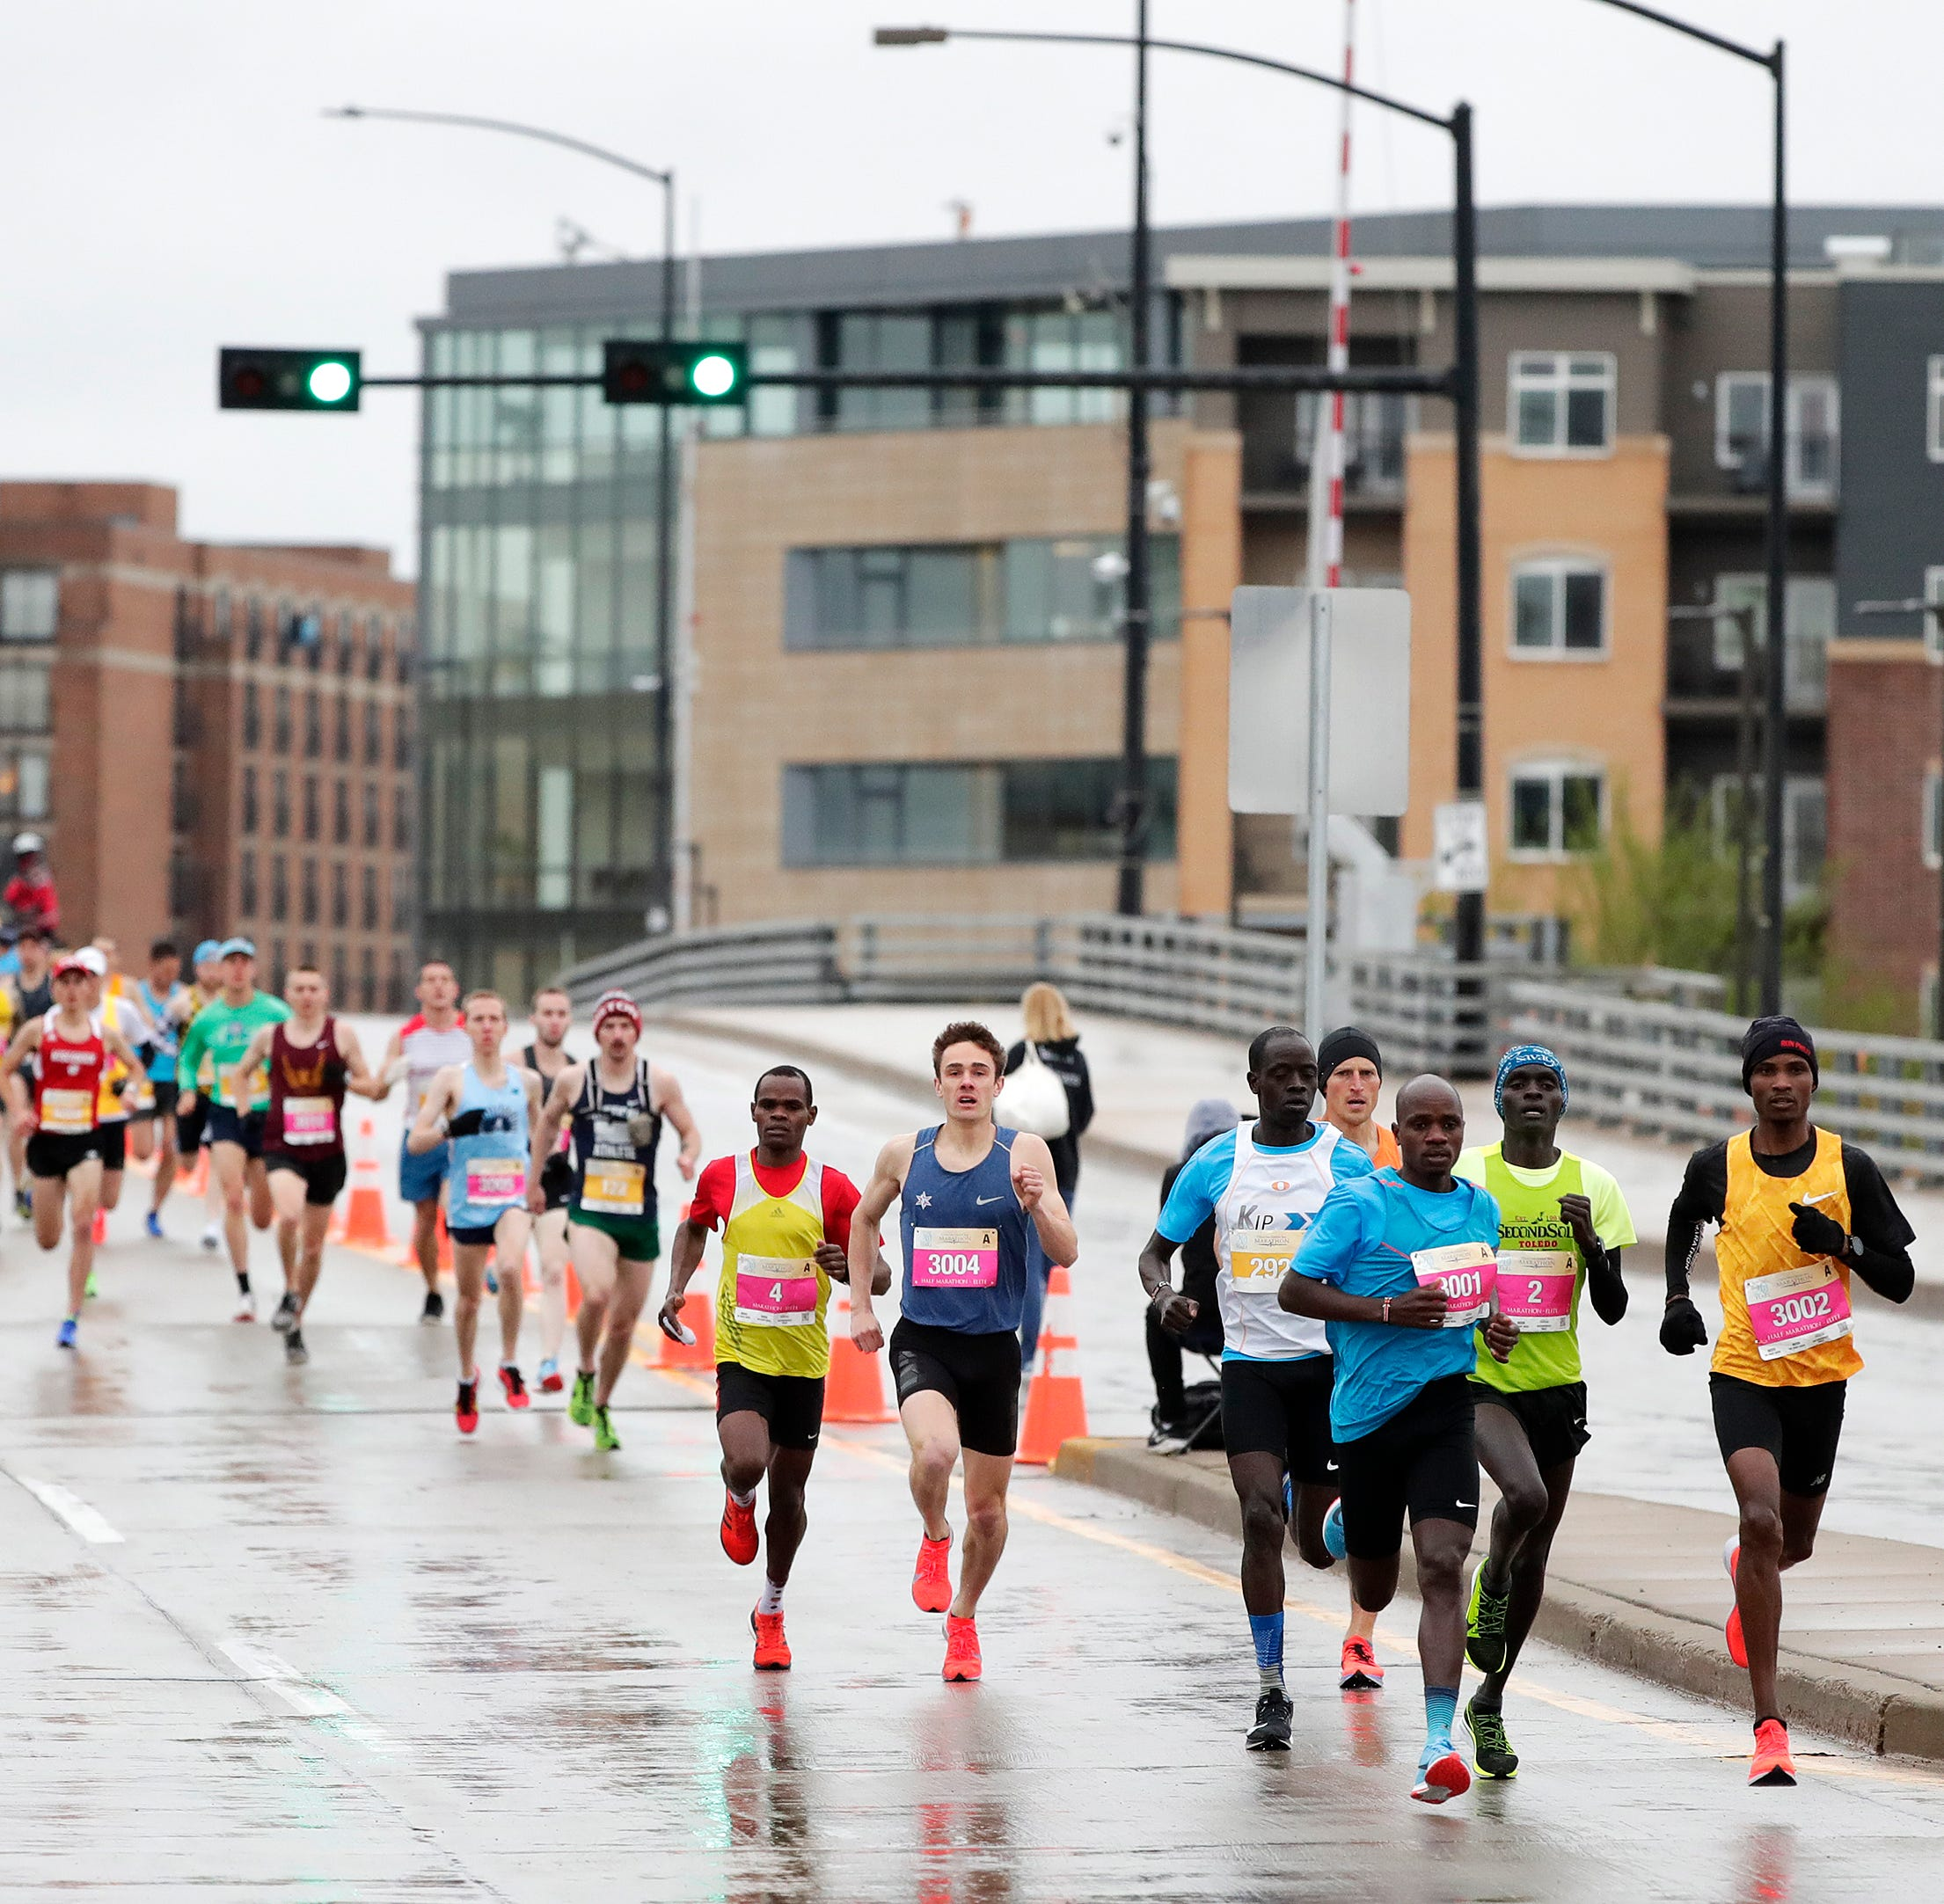 Show must go on for Cellcom Green Bay Marathon runners, organizers